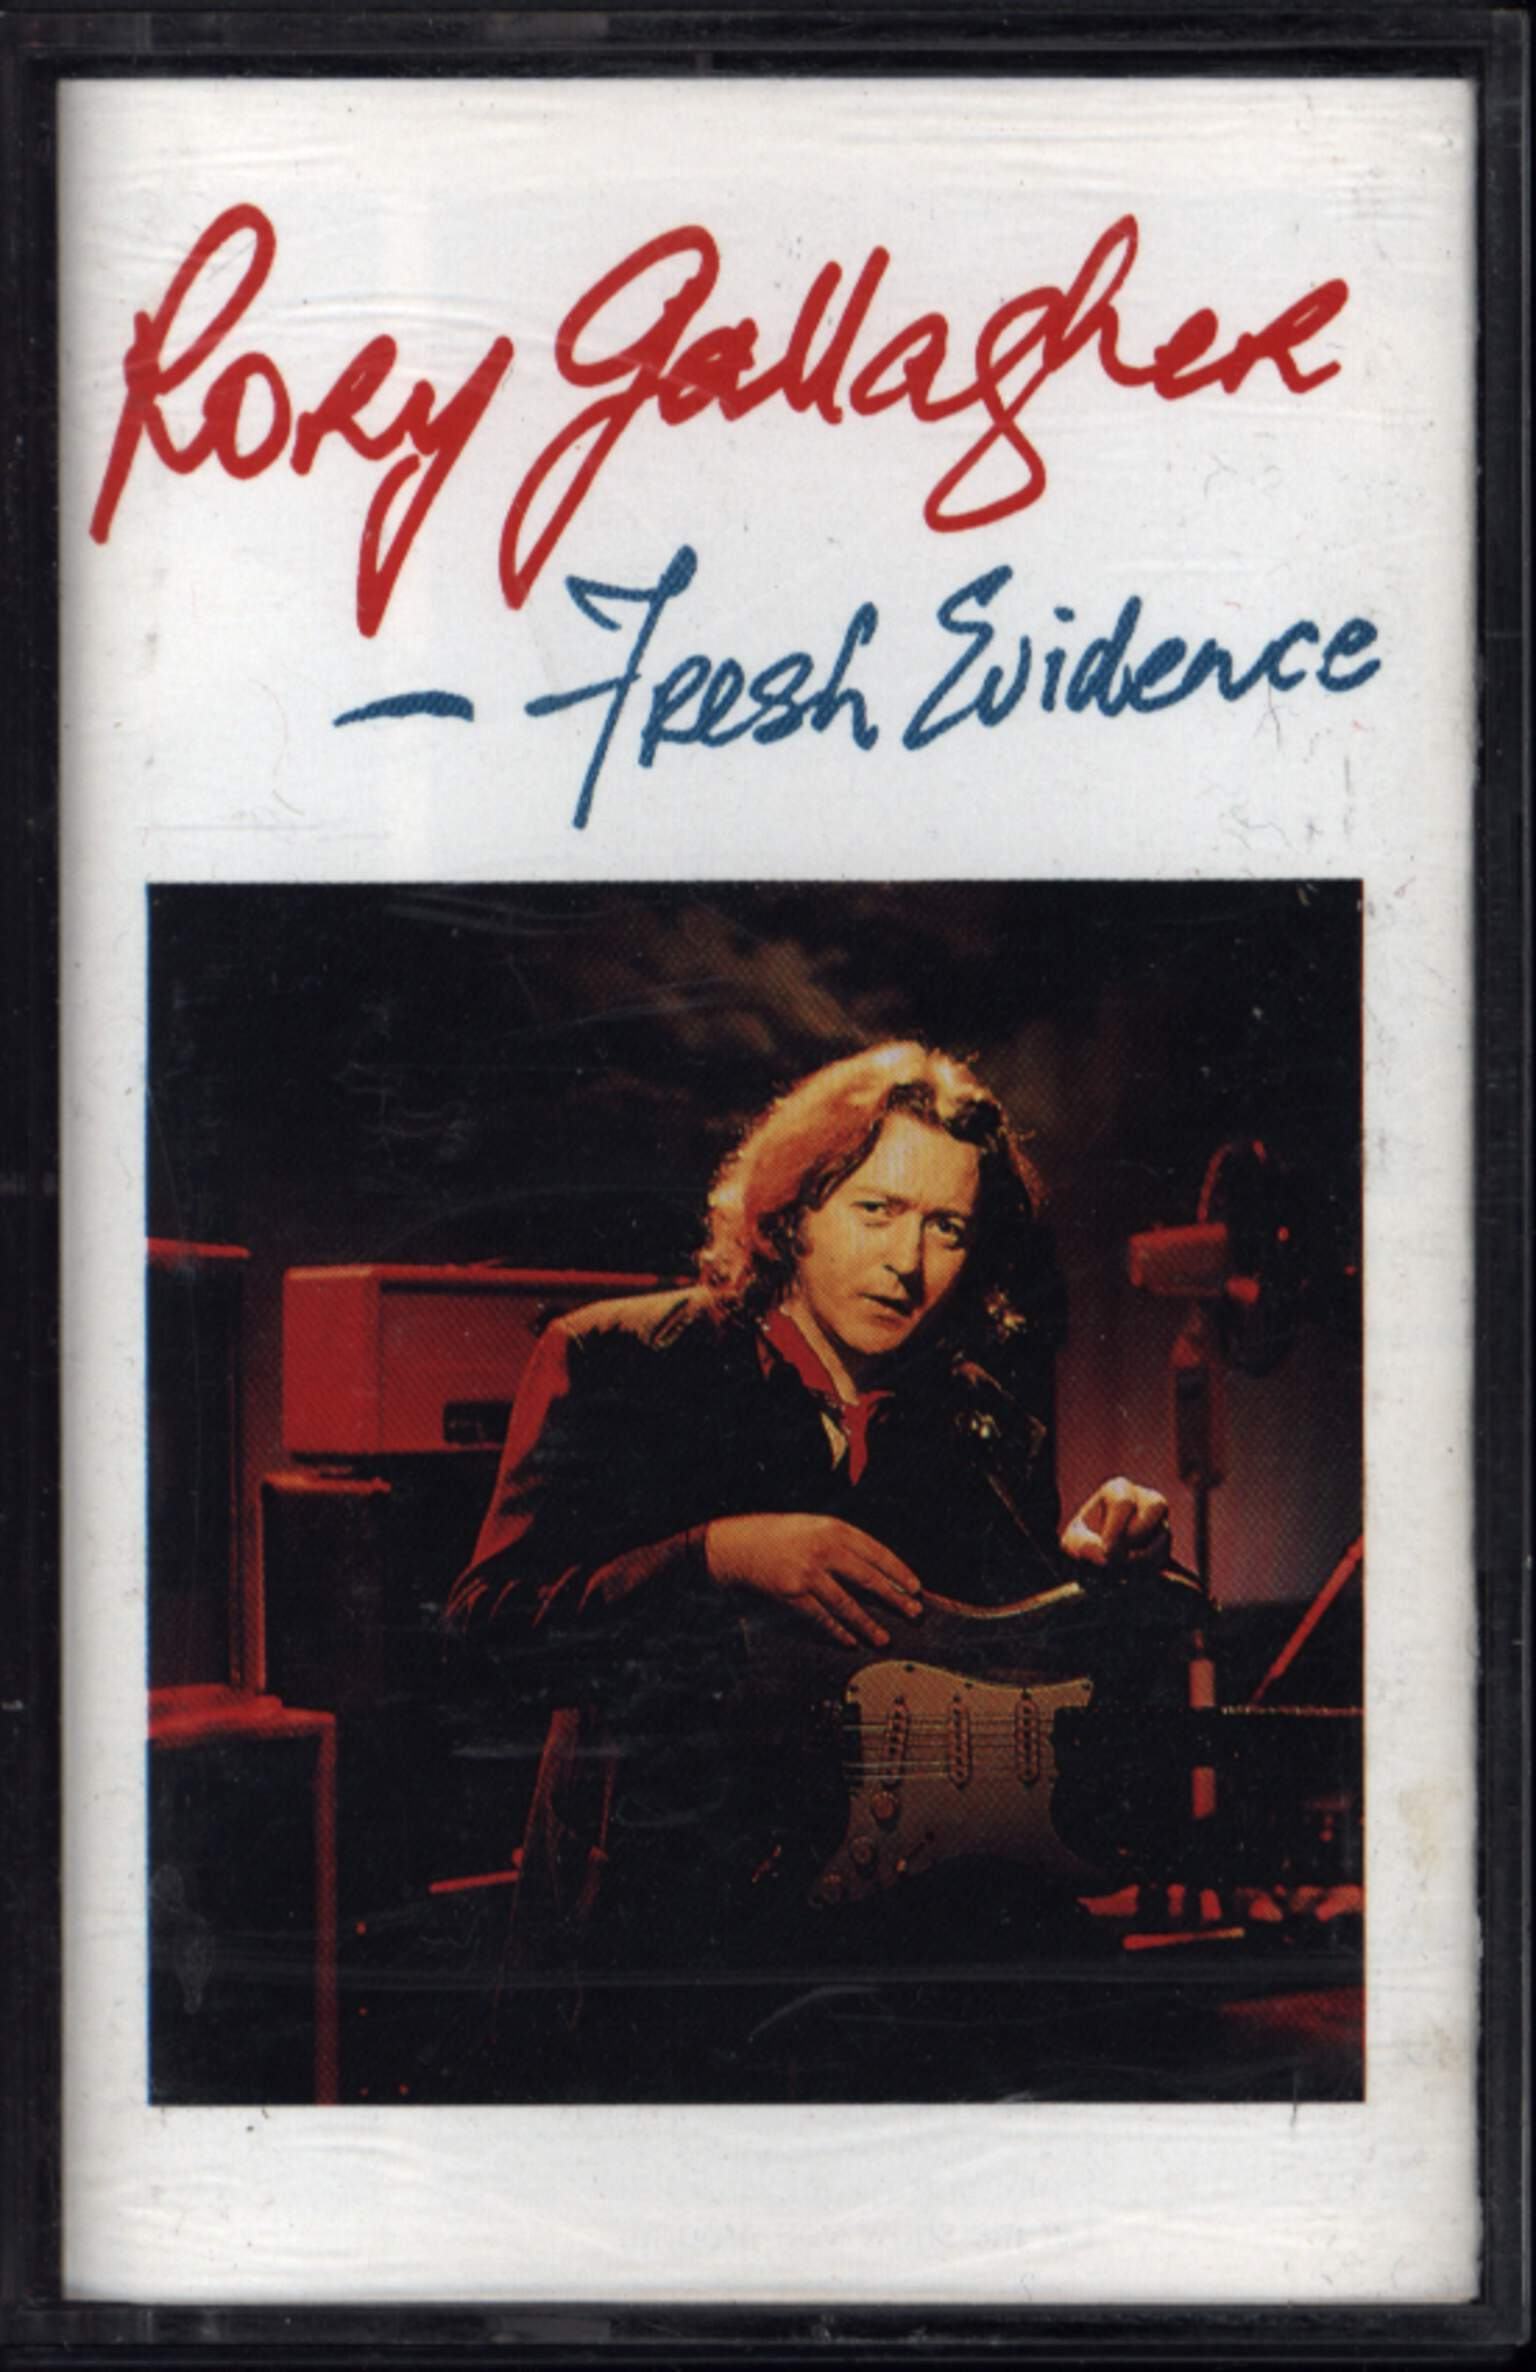 Rory Gallagher: Fresh Evidence, Compact Cassette